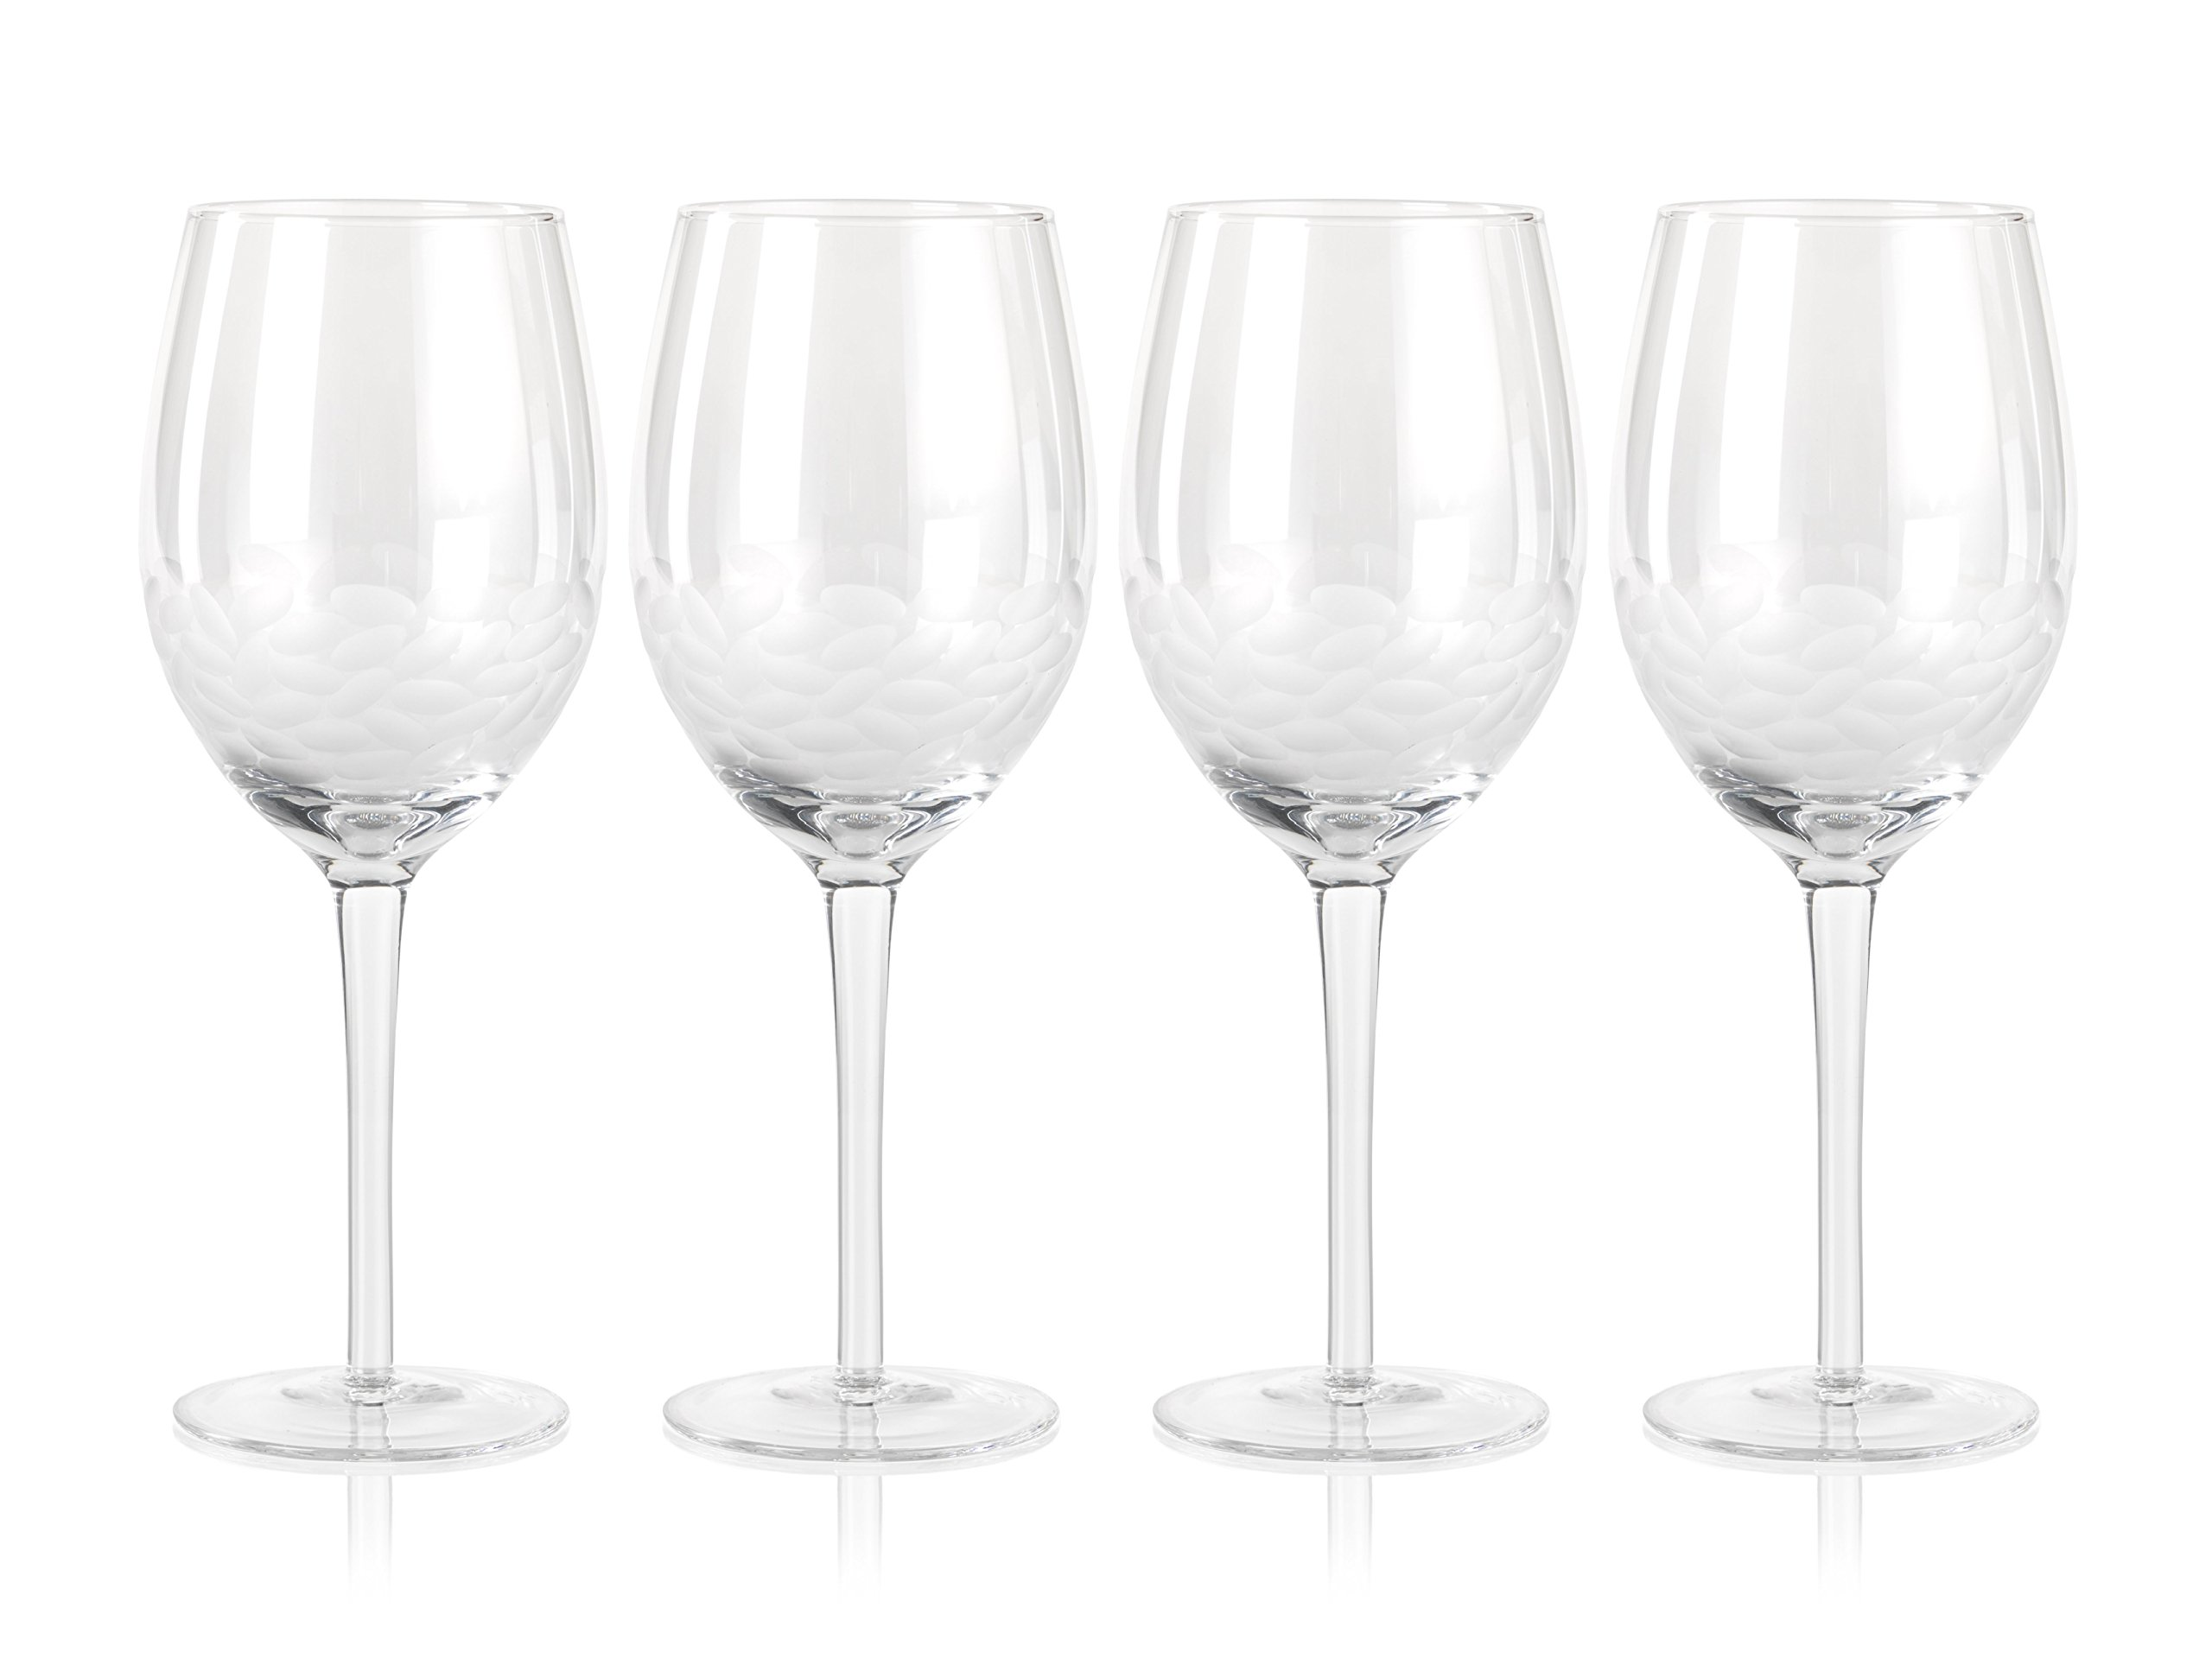 Zodax CH-4747 Villa 9'' Tall Red Wine Glasses (Set of 4), 4 Piece